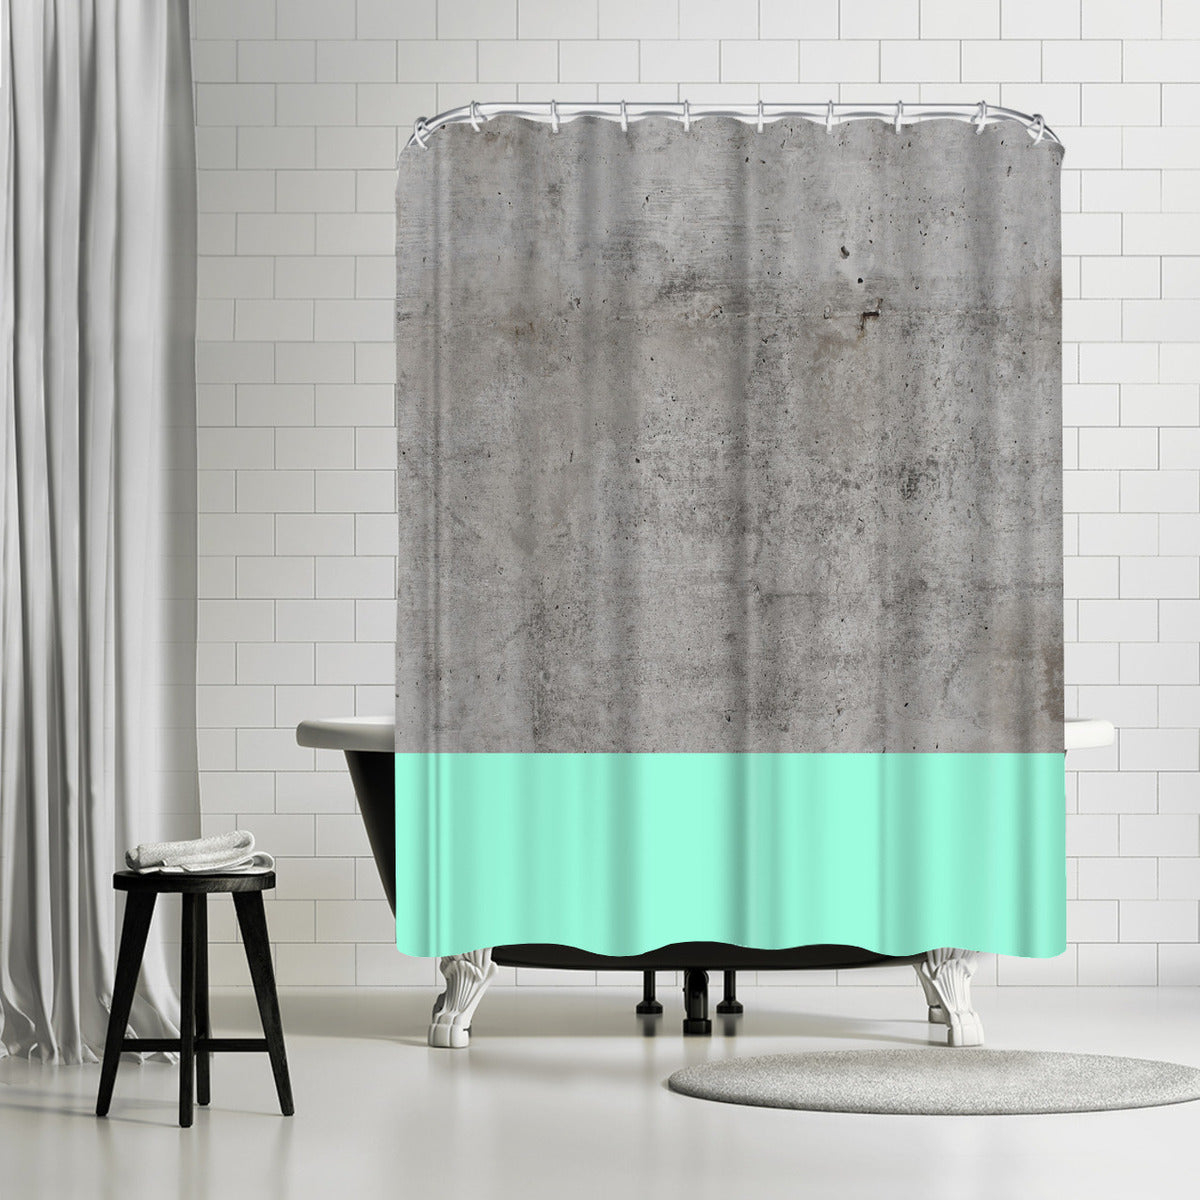 Sea On Concrete by Emanuela Carratoni Shower Curtain -  - Americanflat